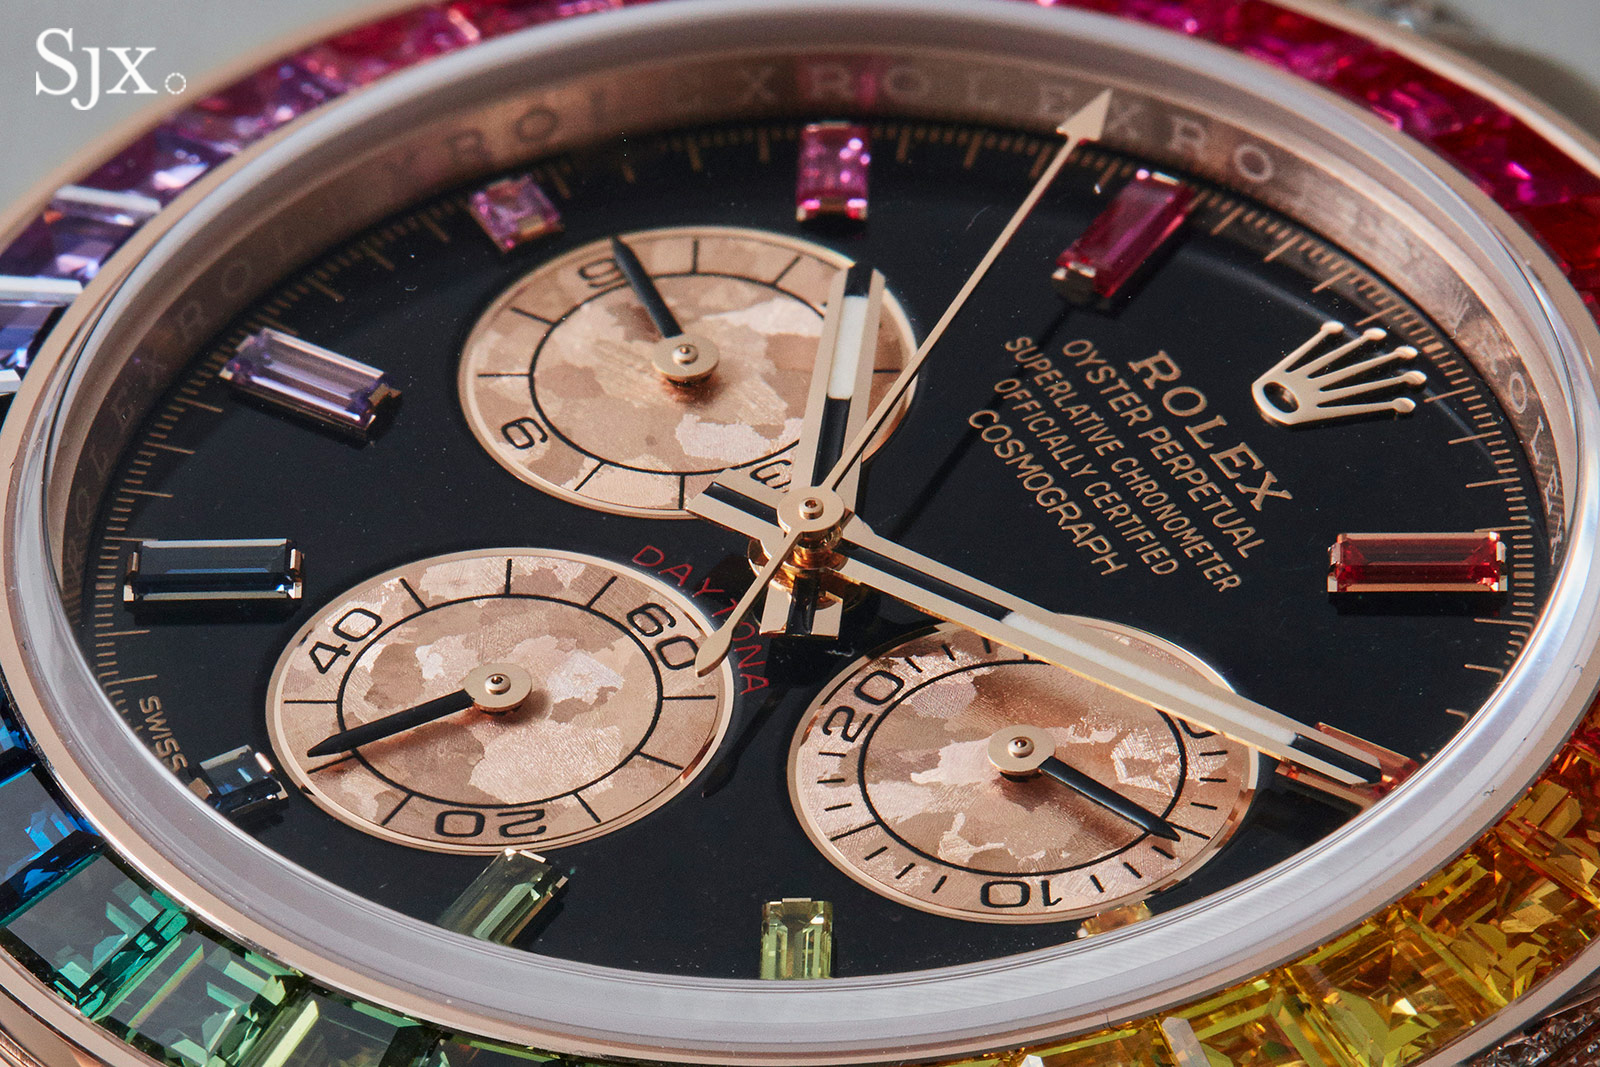 Up Close With The Rolex Daytona Rainbow In Everose Sjx